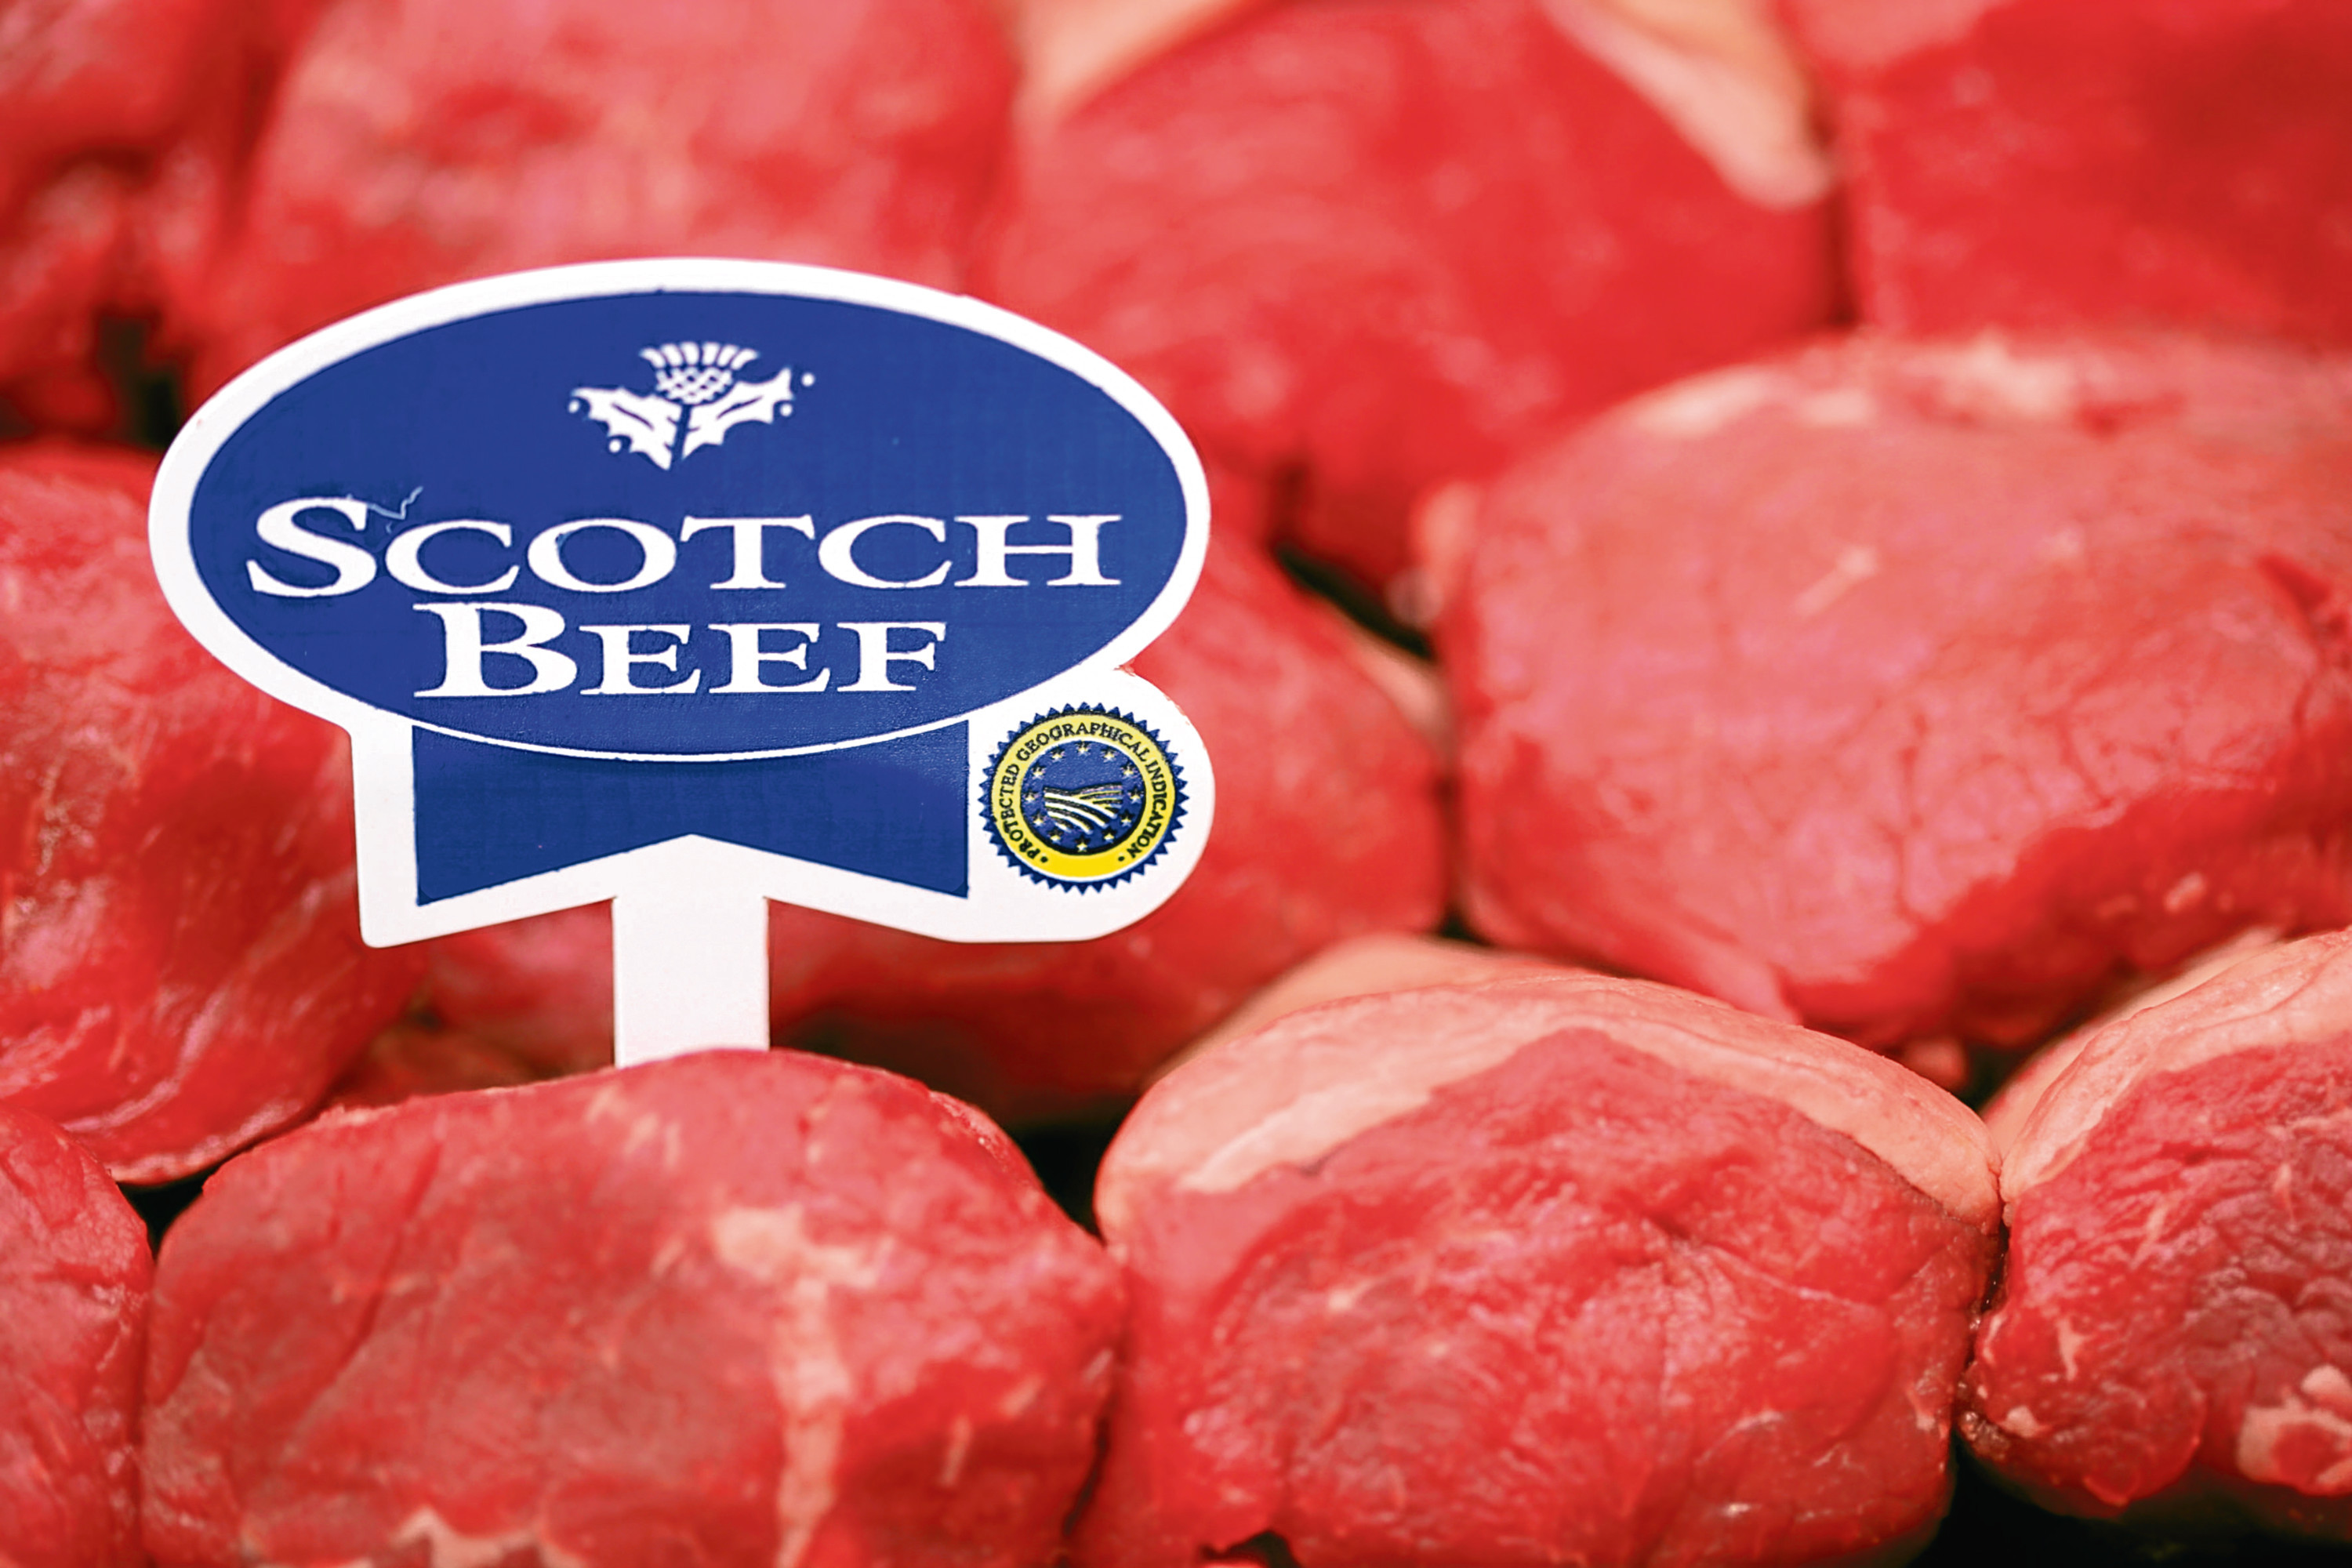 Scotch Beef could soon be exported to China again